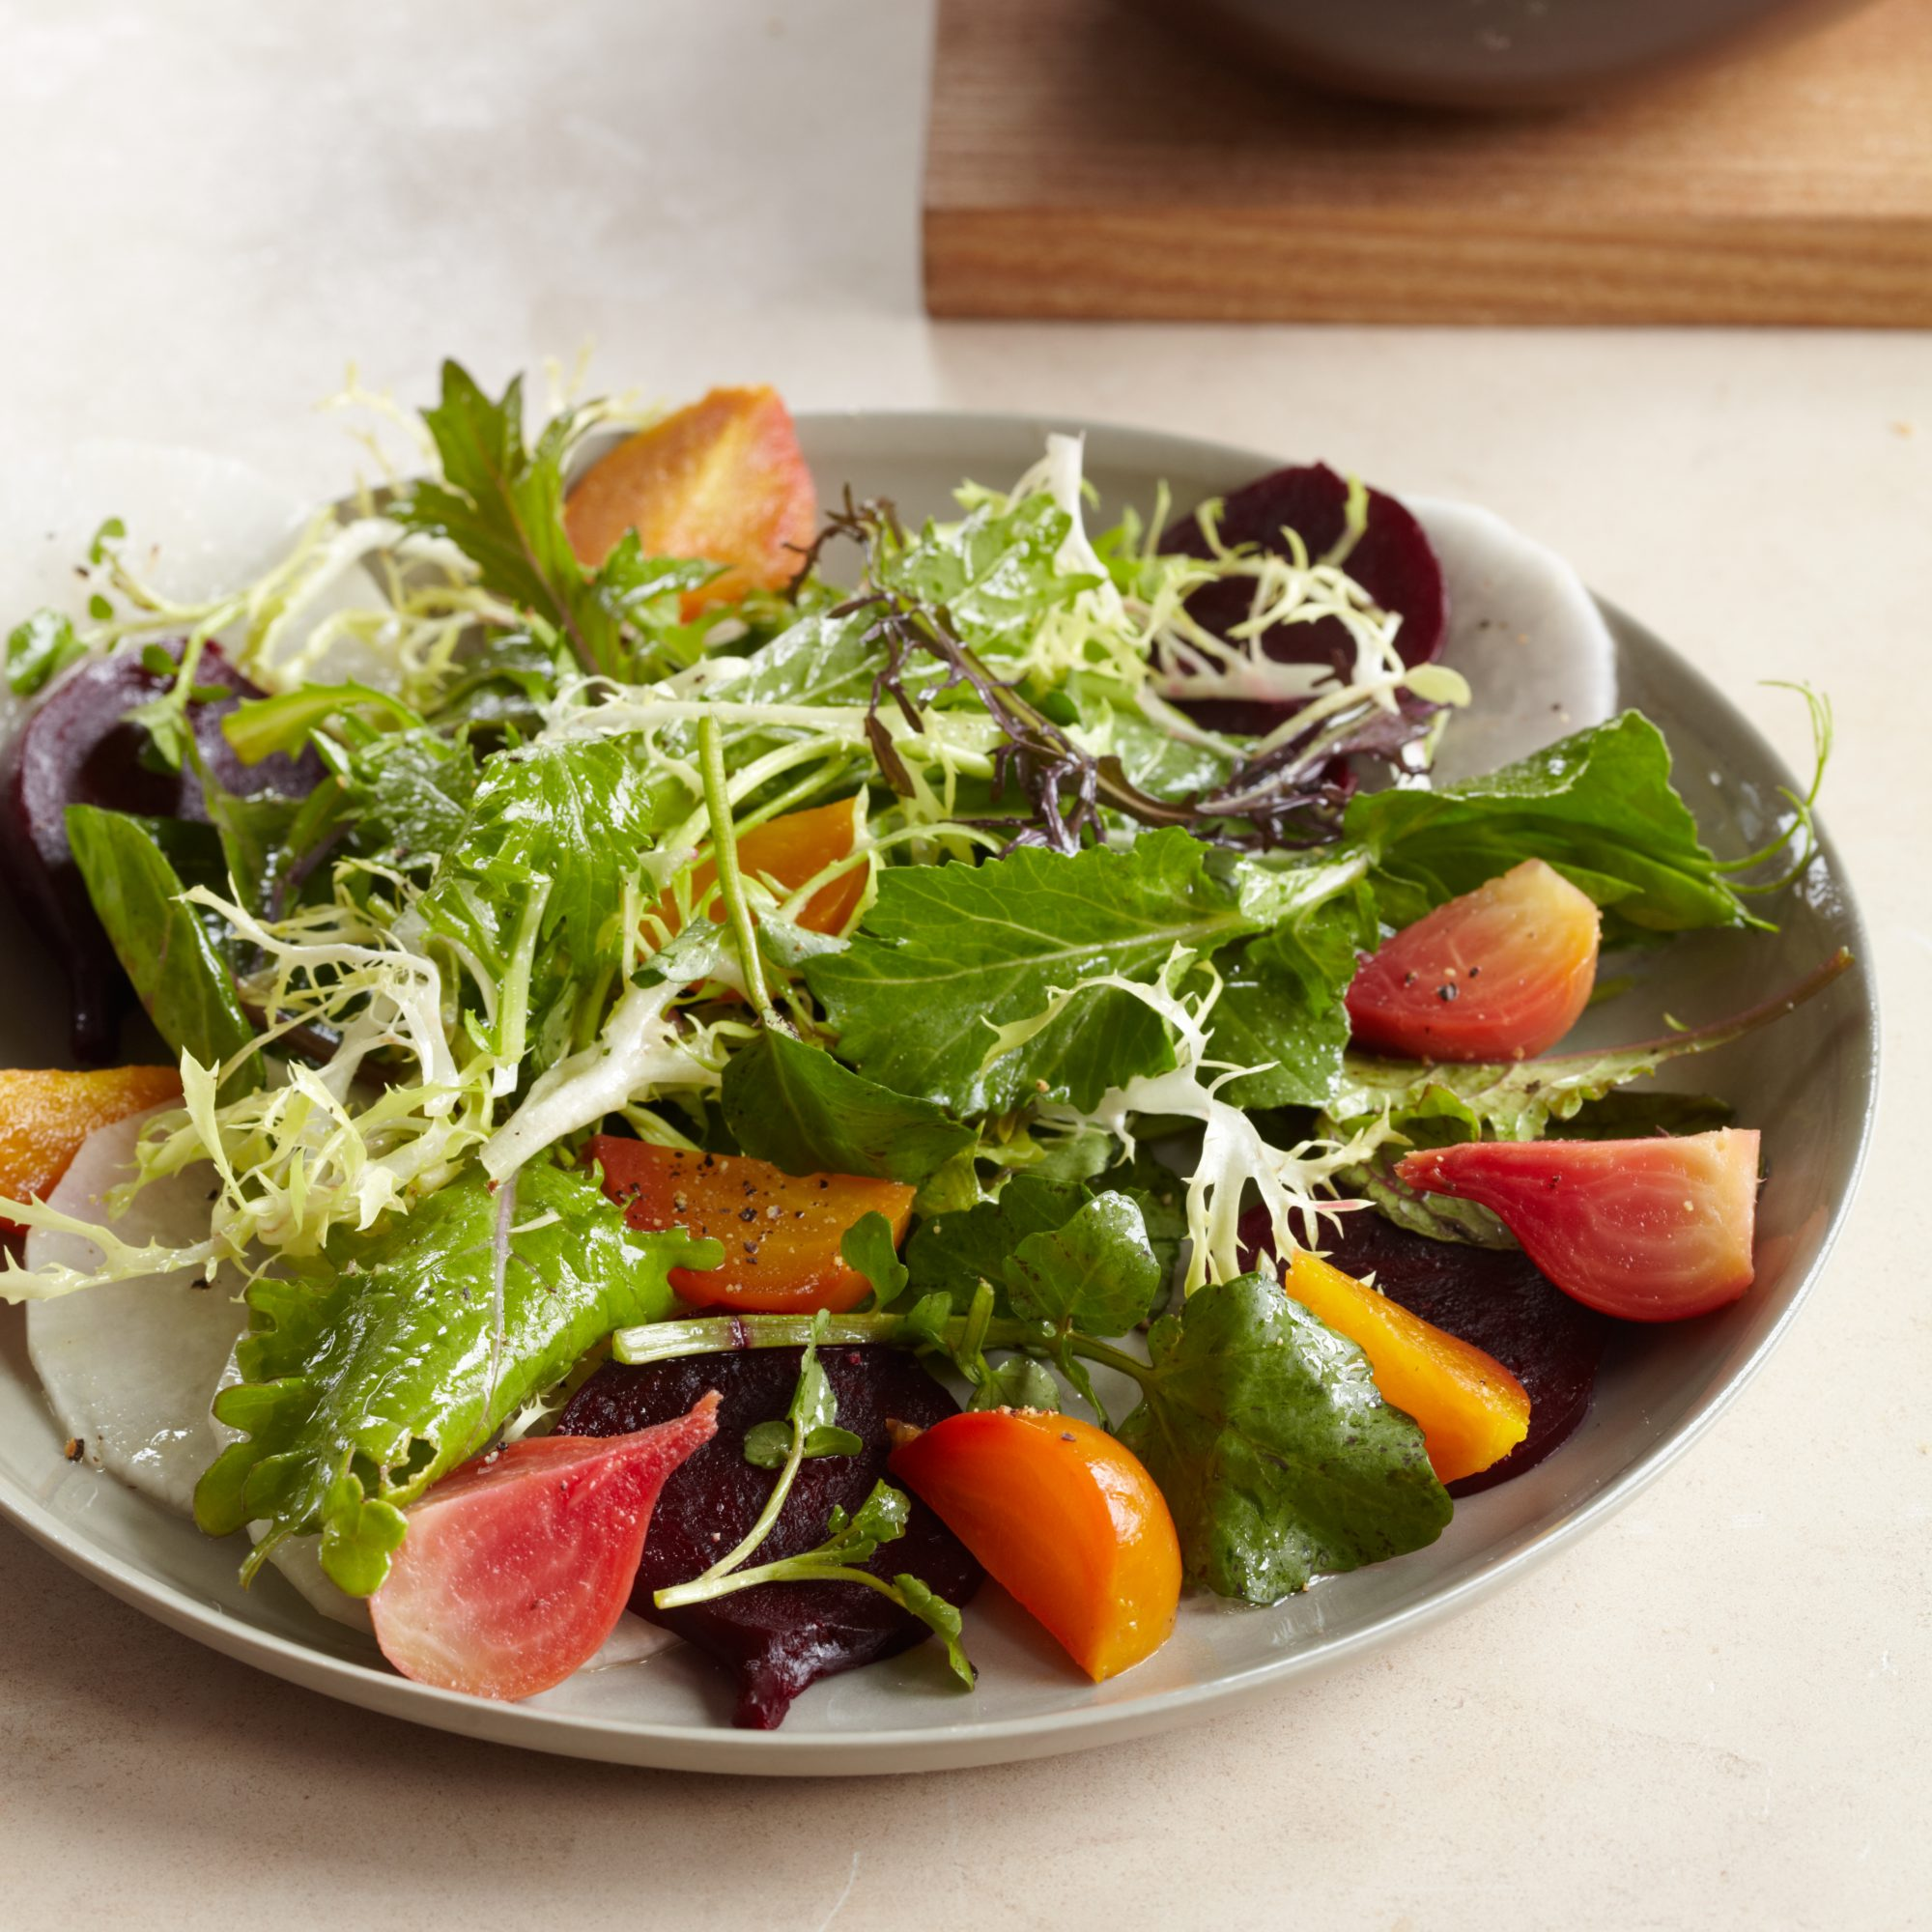 Mixed Green Salad with Beets and Daikon